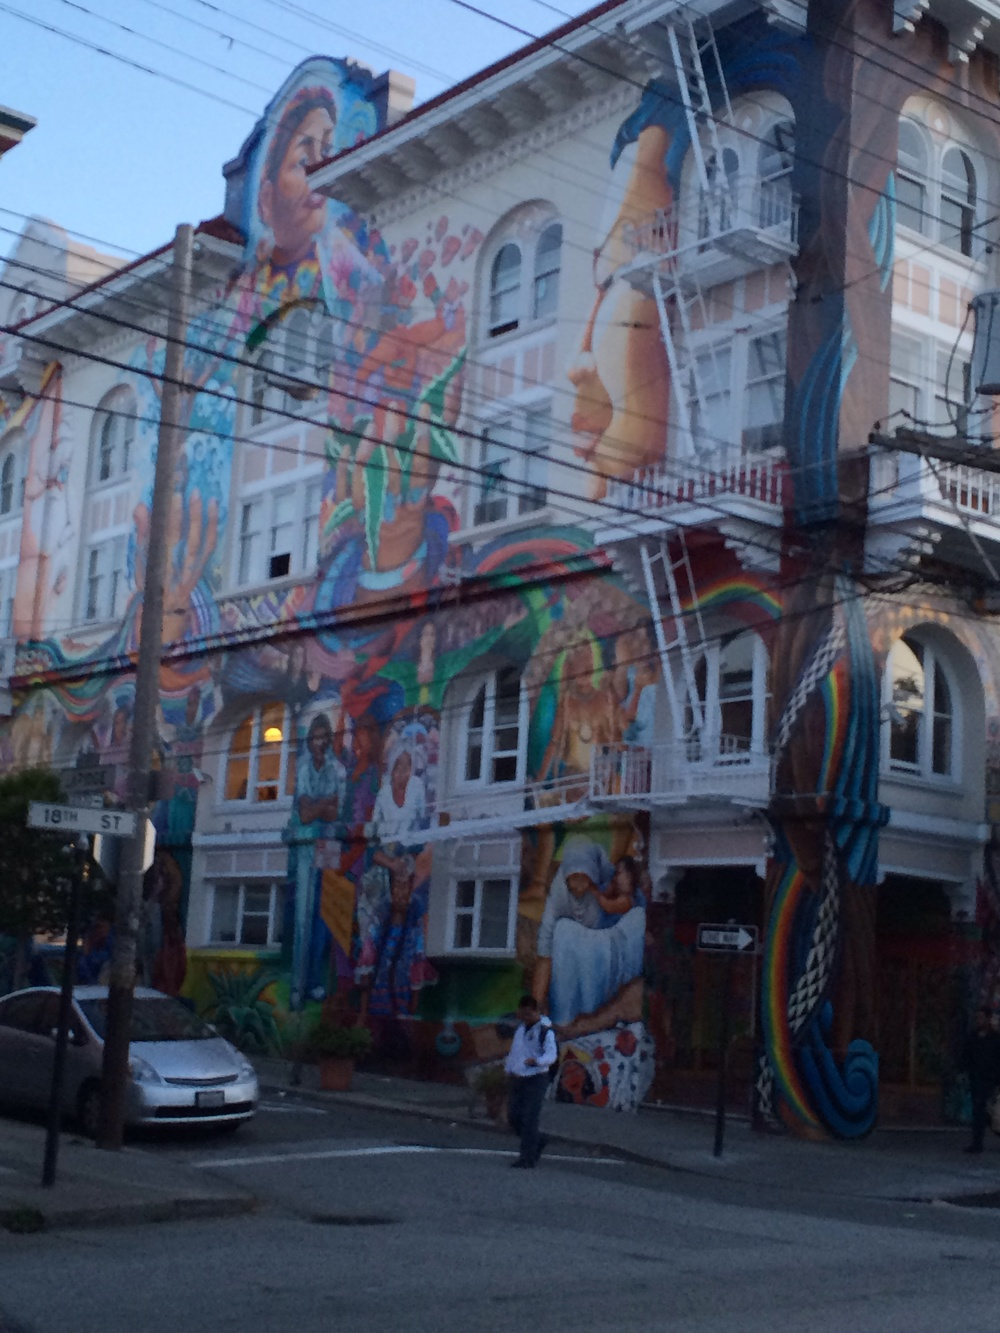 Another dope mural I passed on my epic stroll of San Francisco